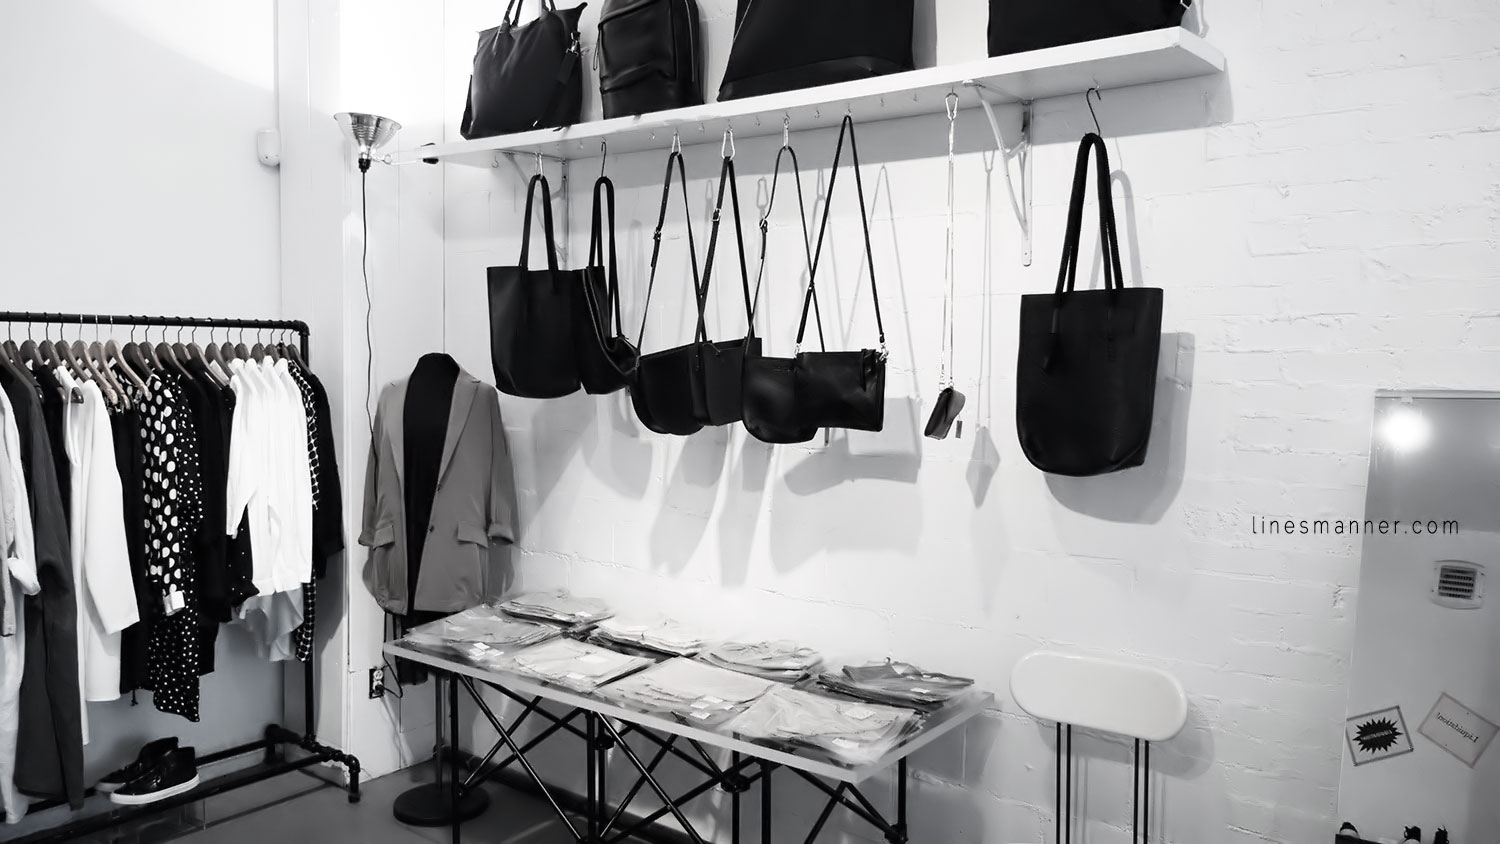 Lines-Manner-Concept-Boutique-Store-Minimal-Trend-Essentials-Basics-Staples-Ibiki-Montreal-Canada-Art-Contemporary-Artistic-Details-Monochrome-Black_and_White-12